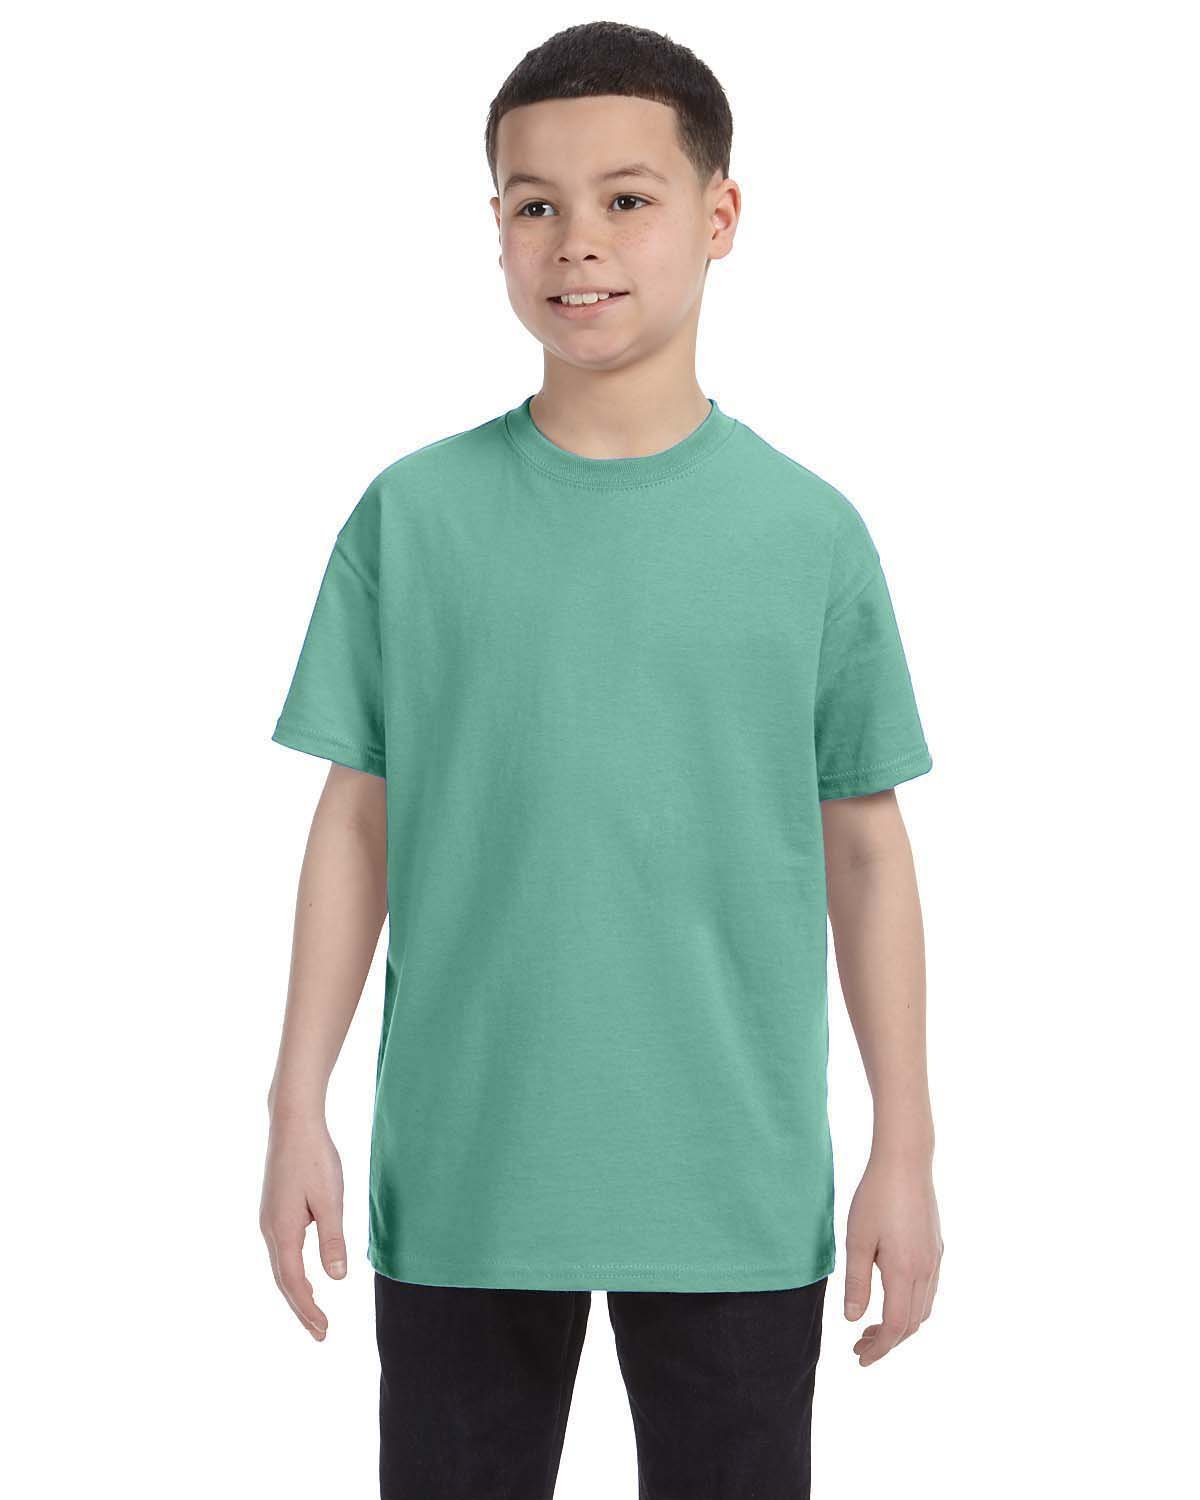 Hanes Youth Authentic-T T-Shirt CLEAN MINT